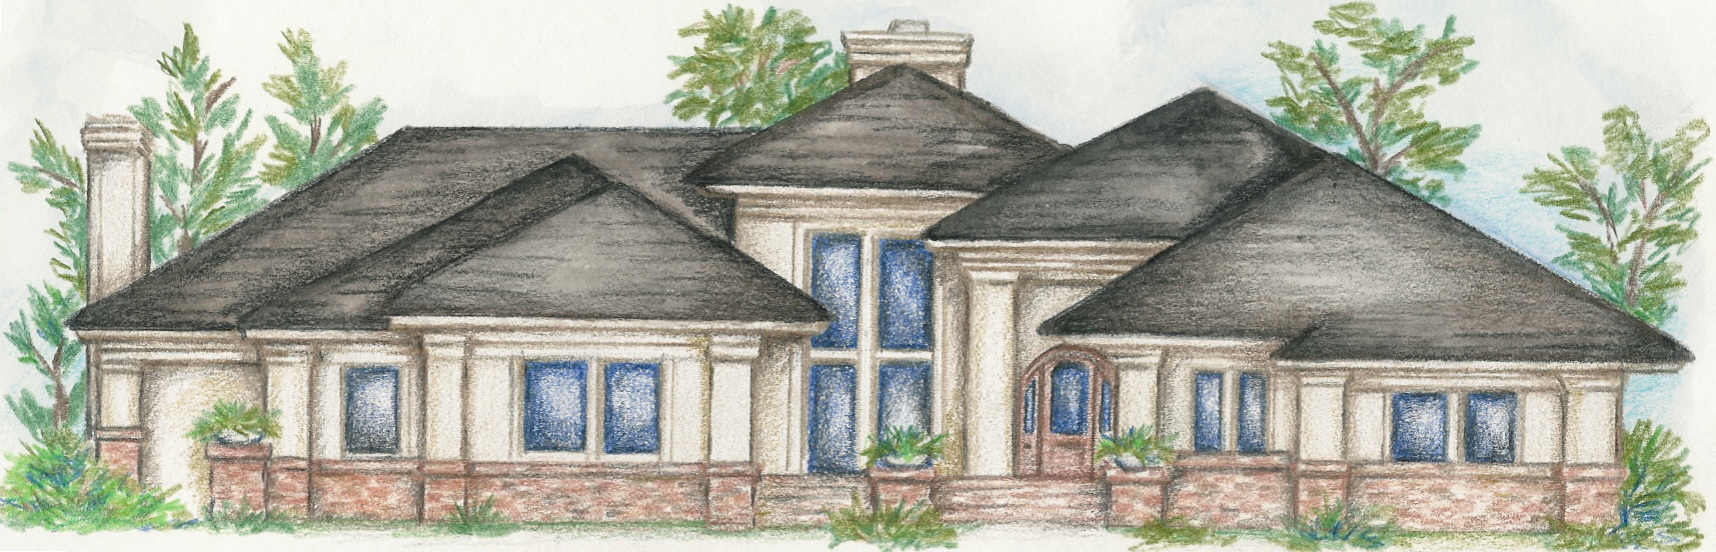 One Story Custom Homes Plans Unique House Plans